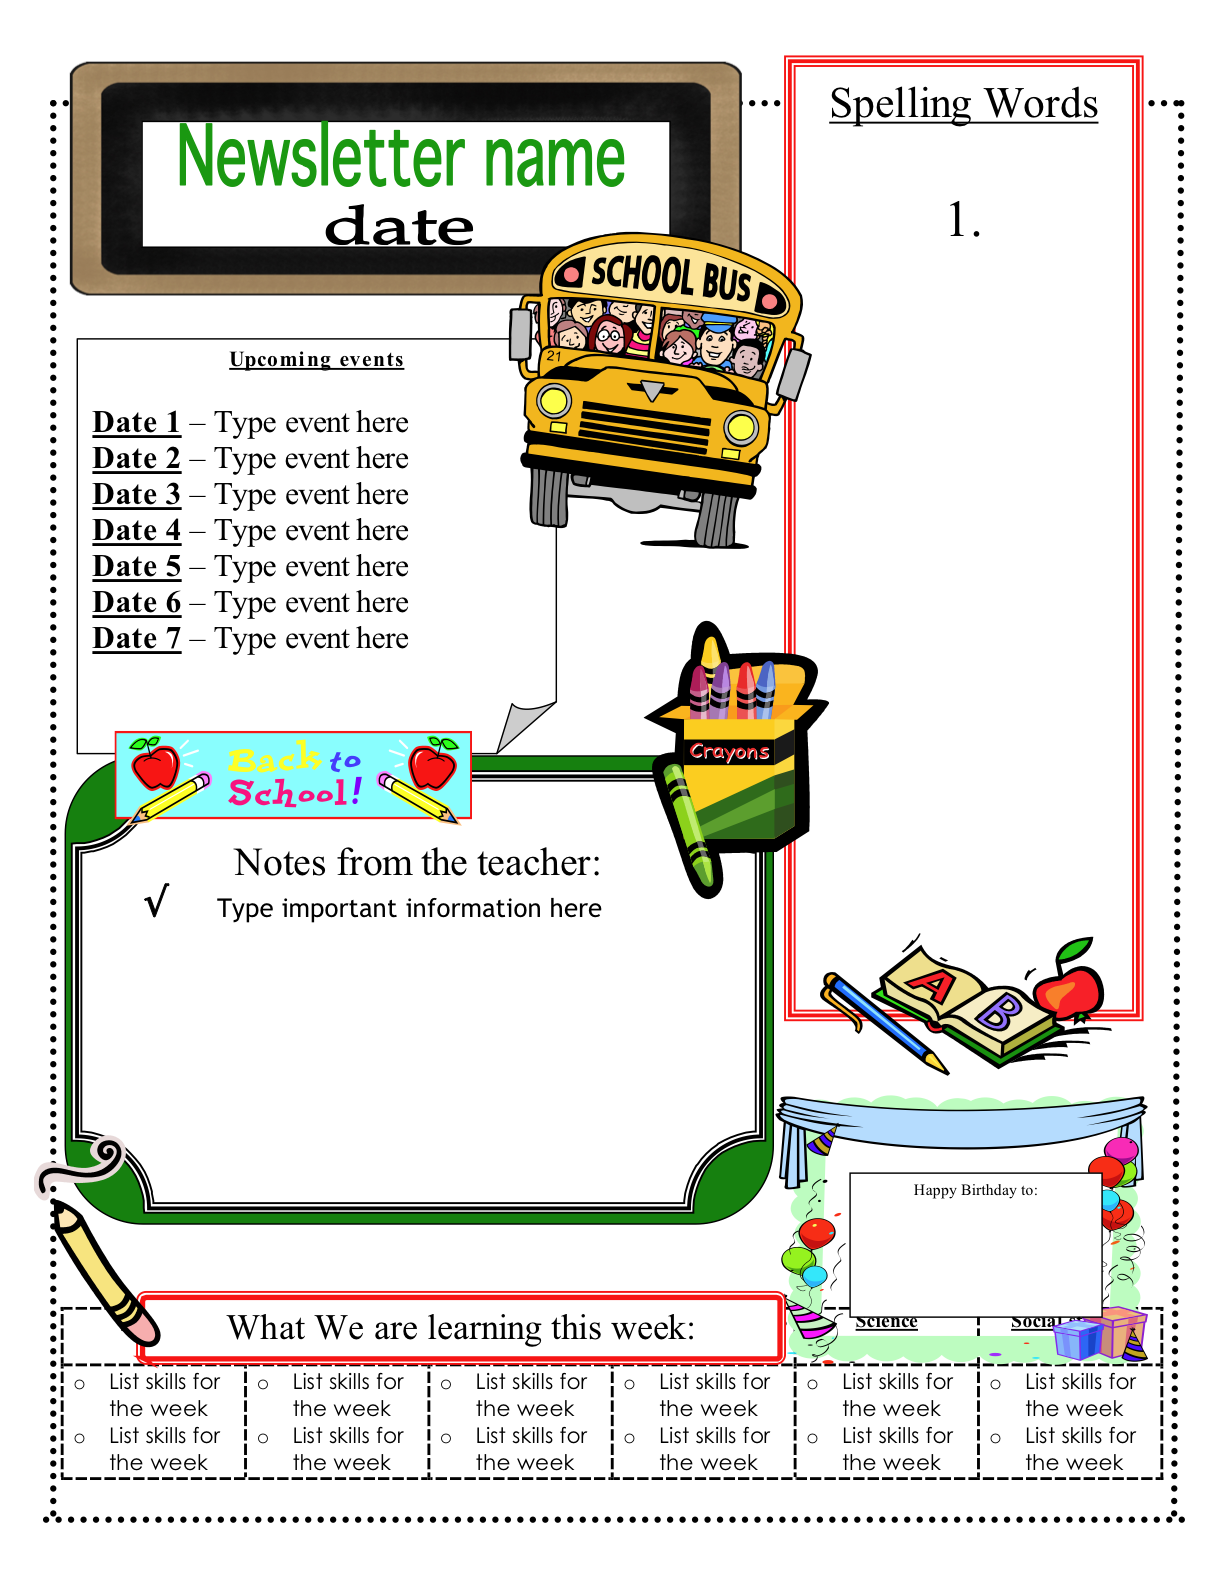 Free Classroom Newsletter Templates Check Out These Eight Super